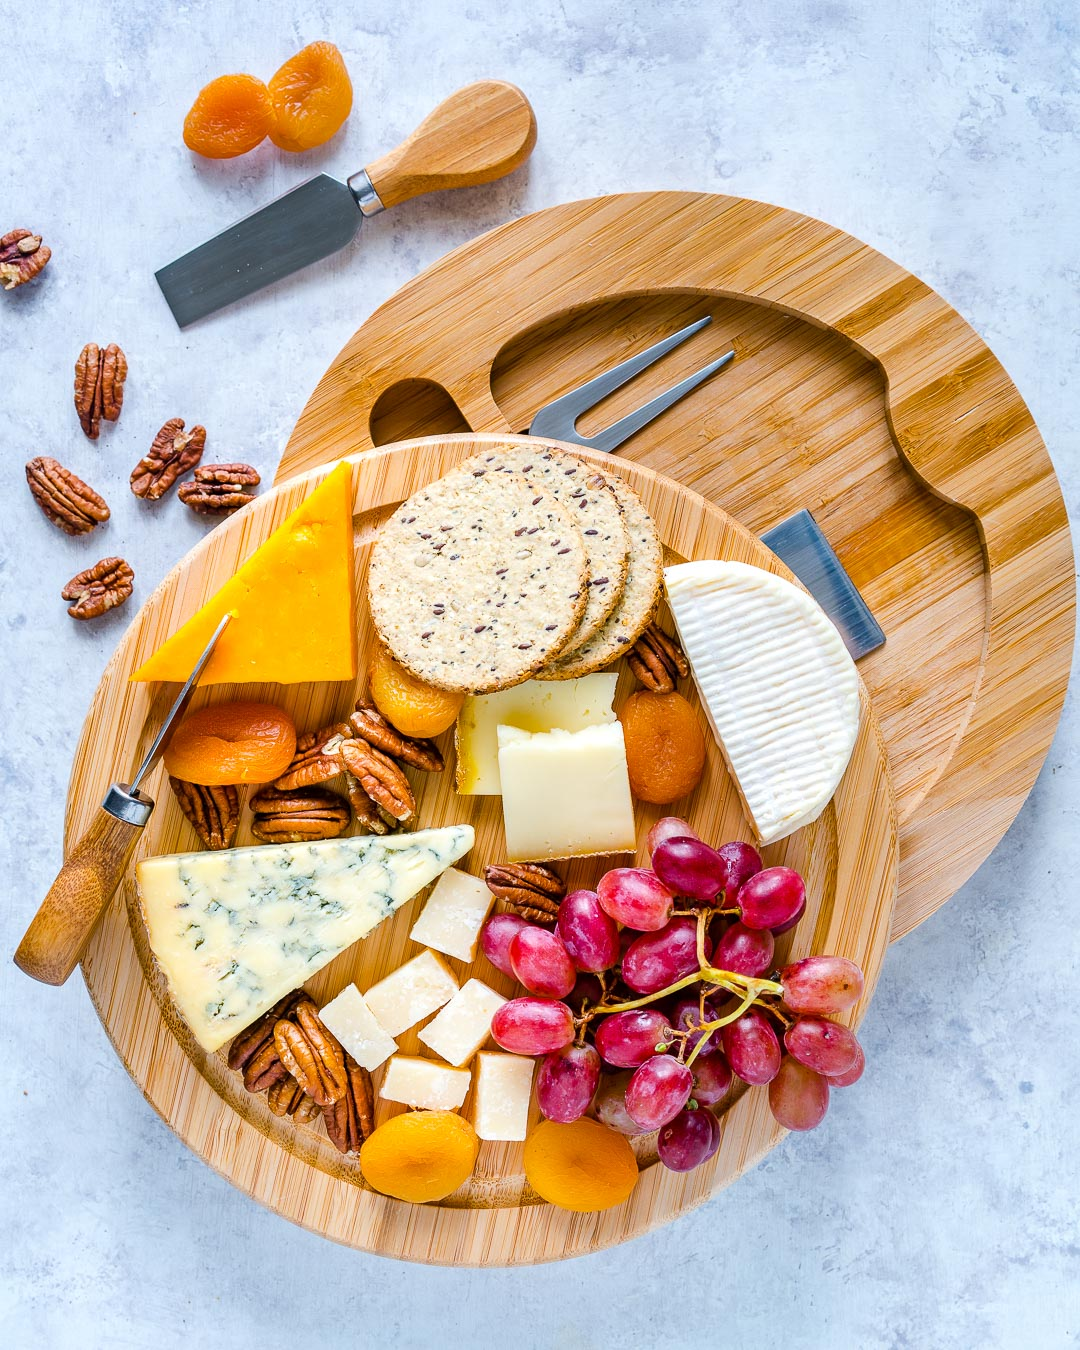 How To Make A Cheese Board 8